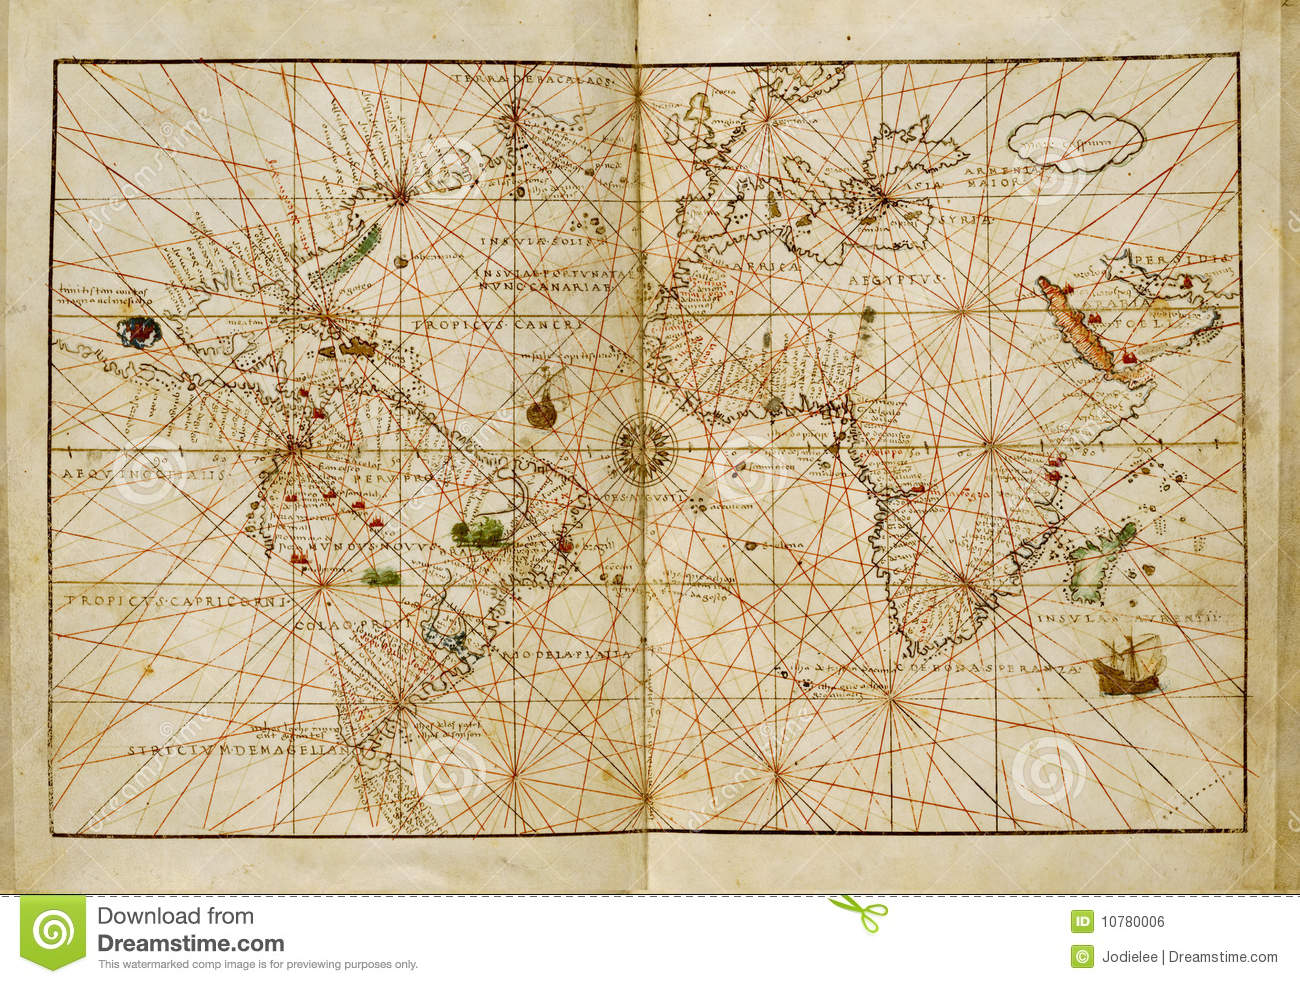 Antique world map stock photo image of directions vintage 10780006 antique world map directions vintage gumiabroncs Images